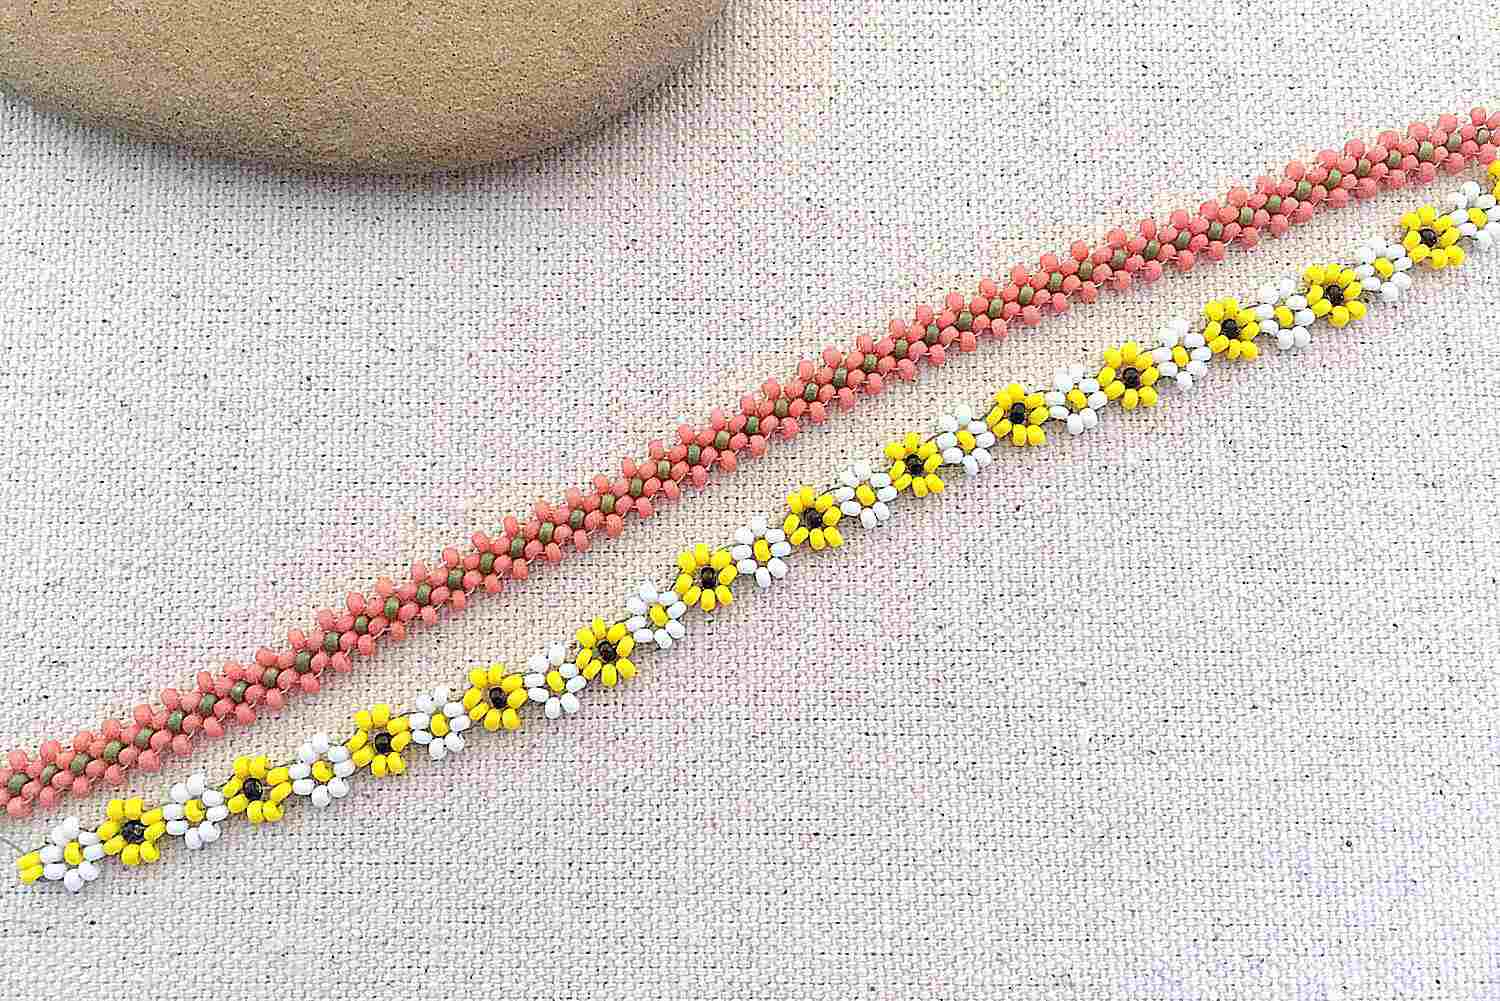 9abf92b4a80 Daisy Chain Beading Stitch Tutorial. Connected Daisy Chain Tutorial